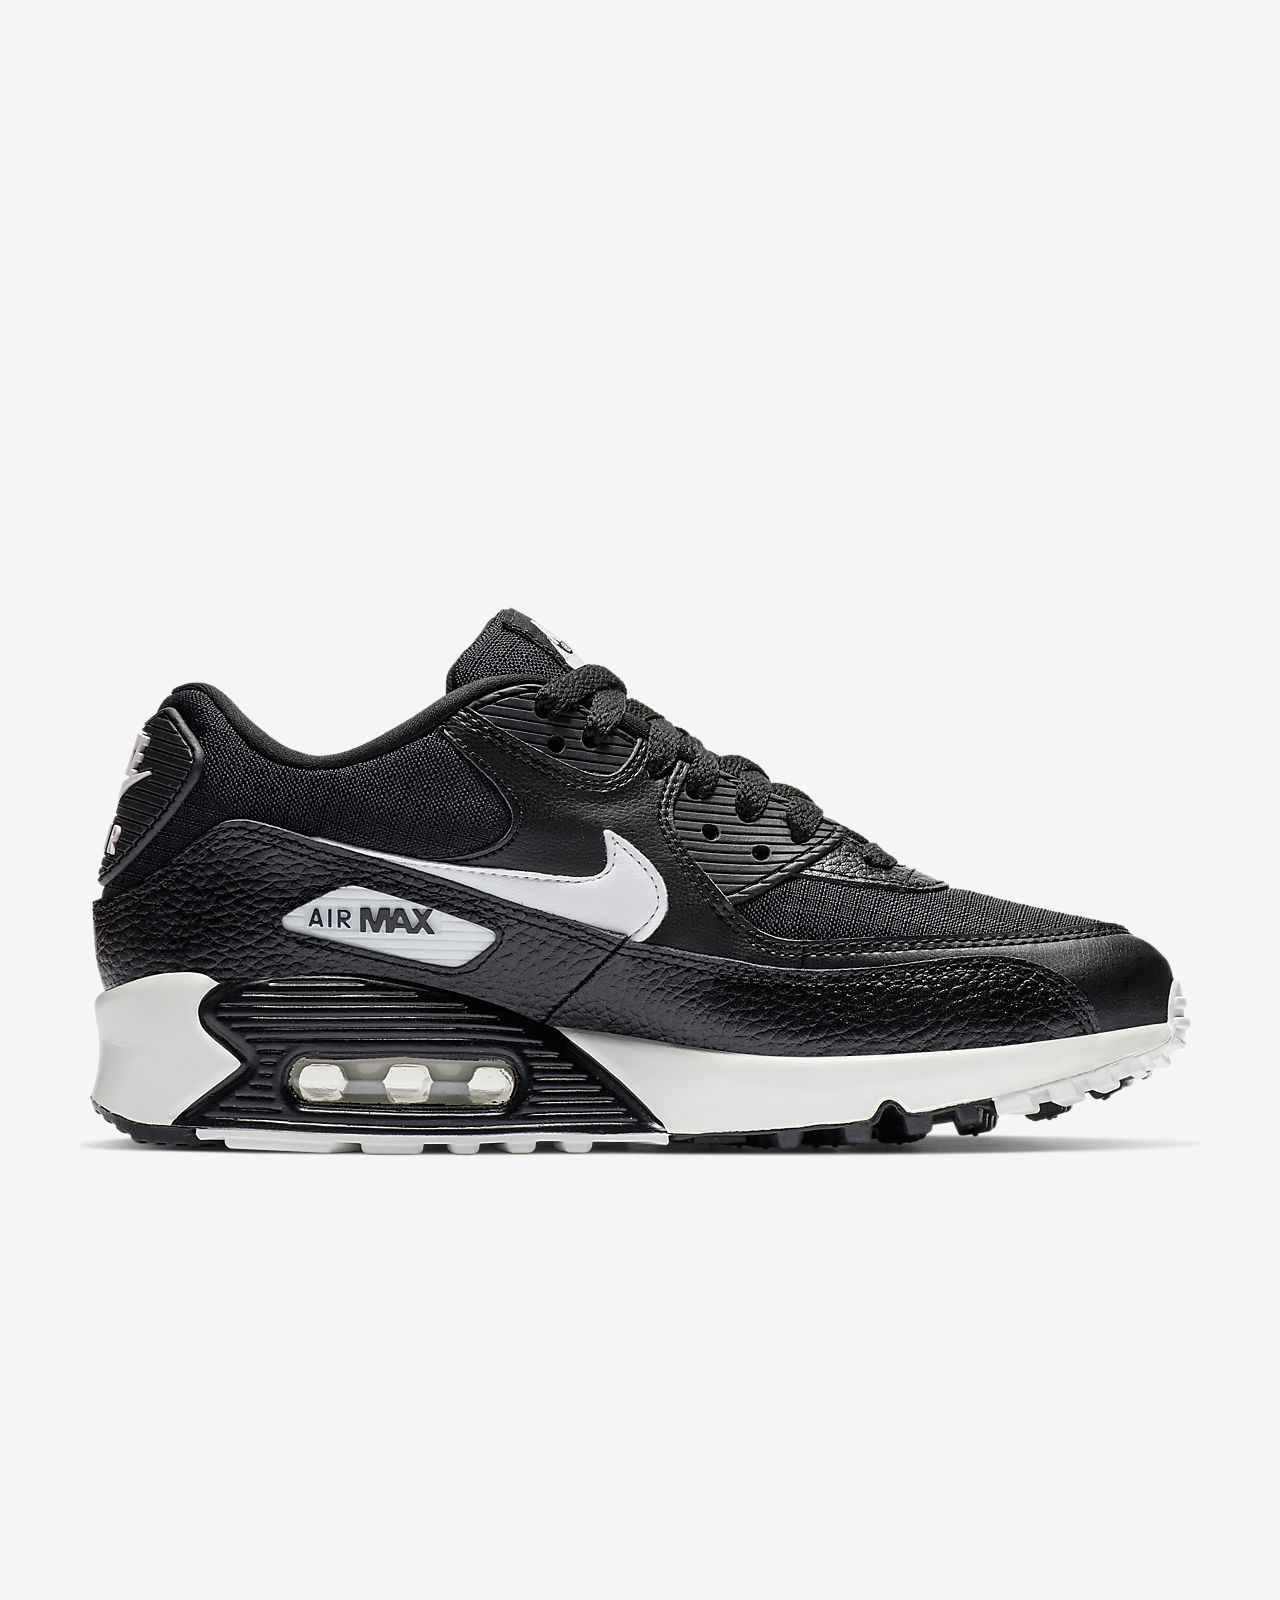 info for 76a0c d4566 Chaussure Nike Air Max 90 pour Femme. Nike.com FR